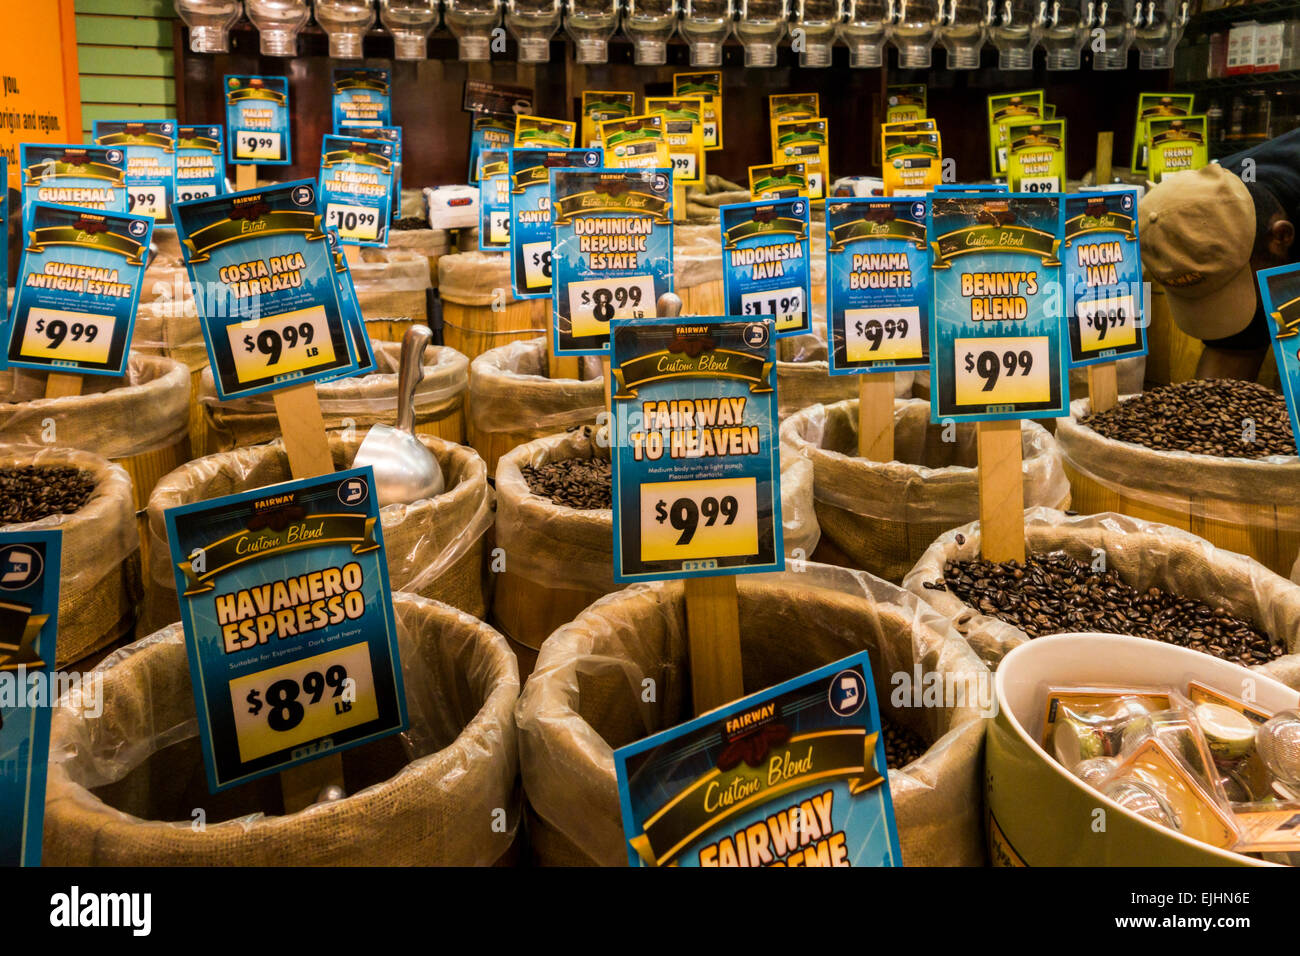 Baskets of coffee beans at Fairway Market, New York City, USA - Stock Image